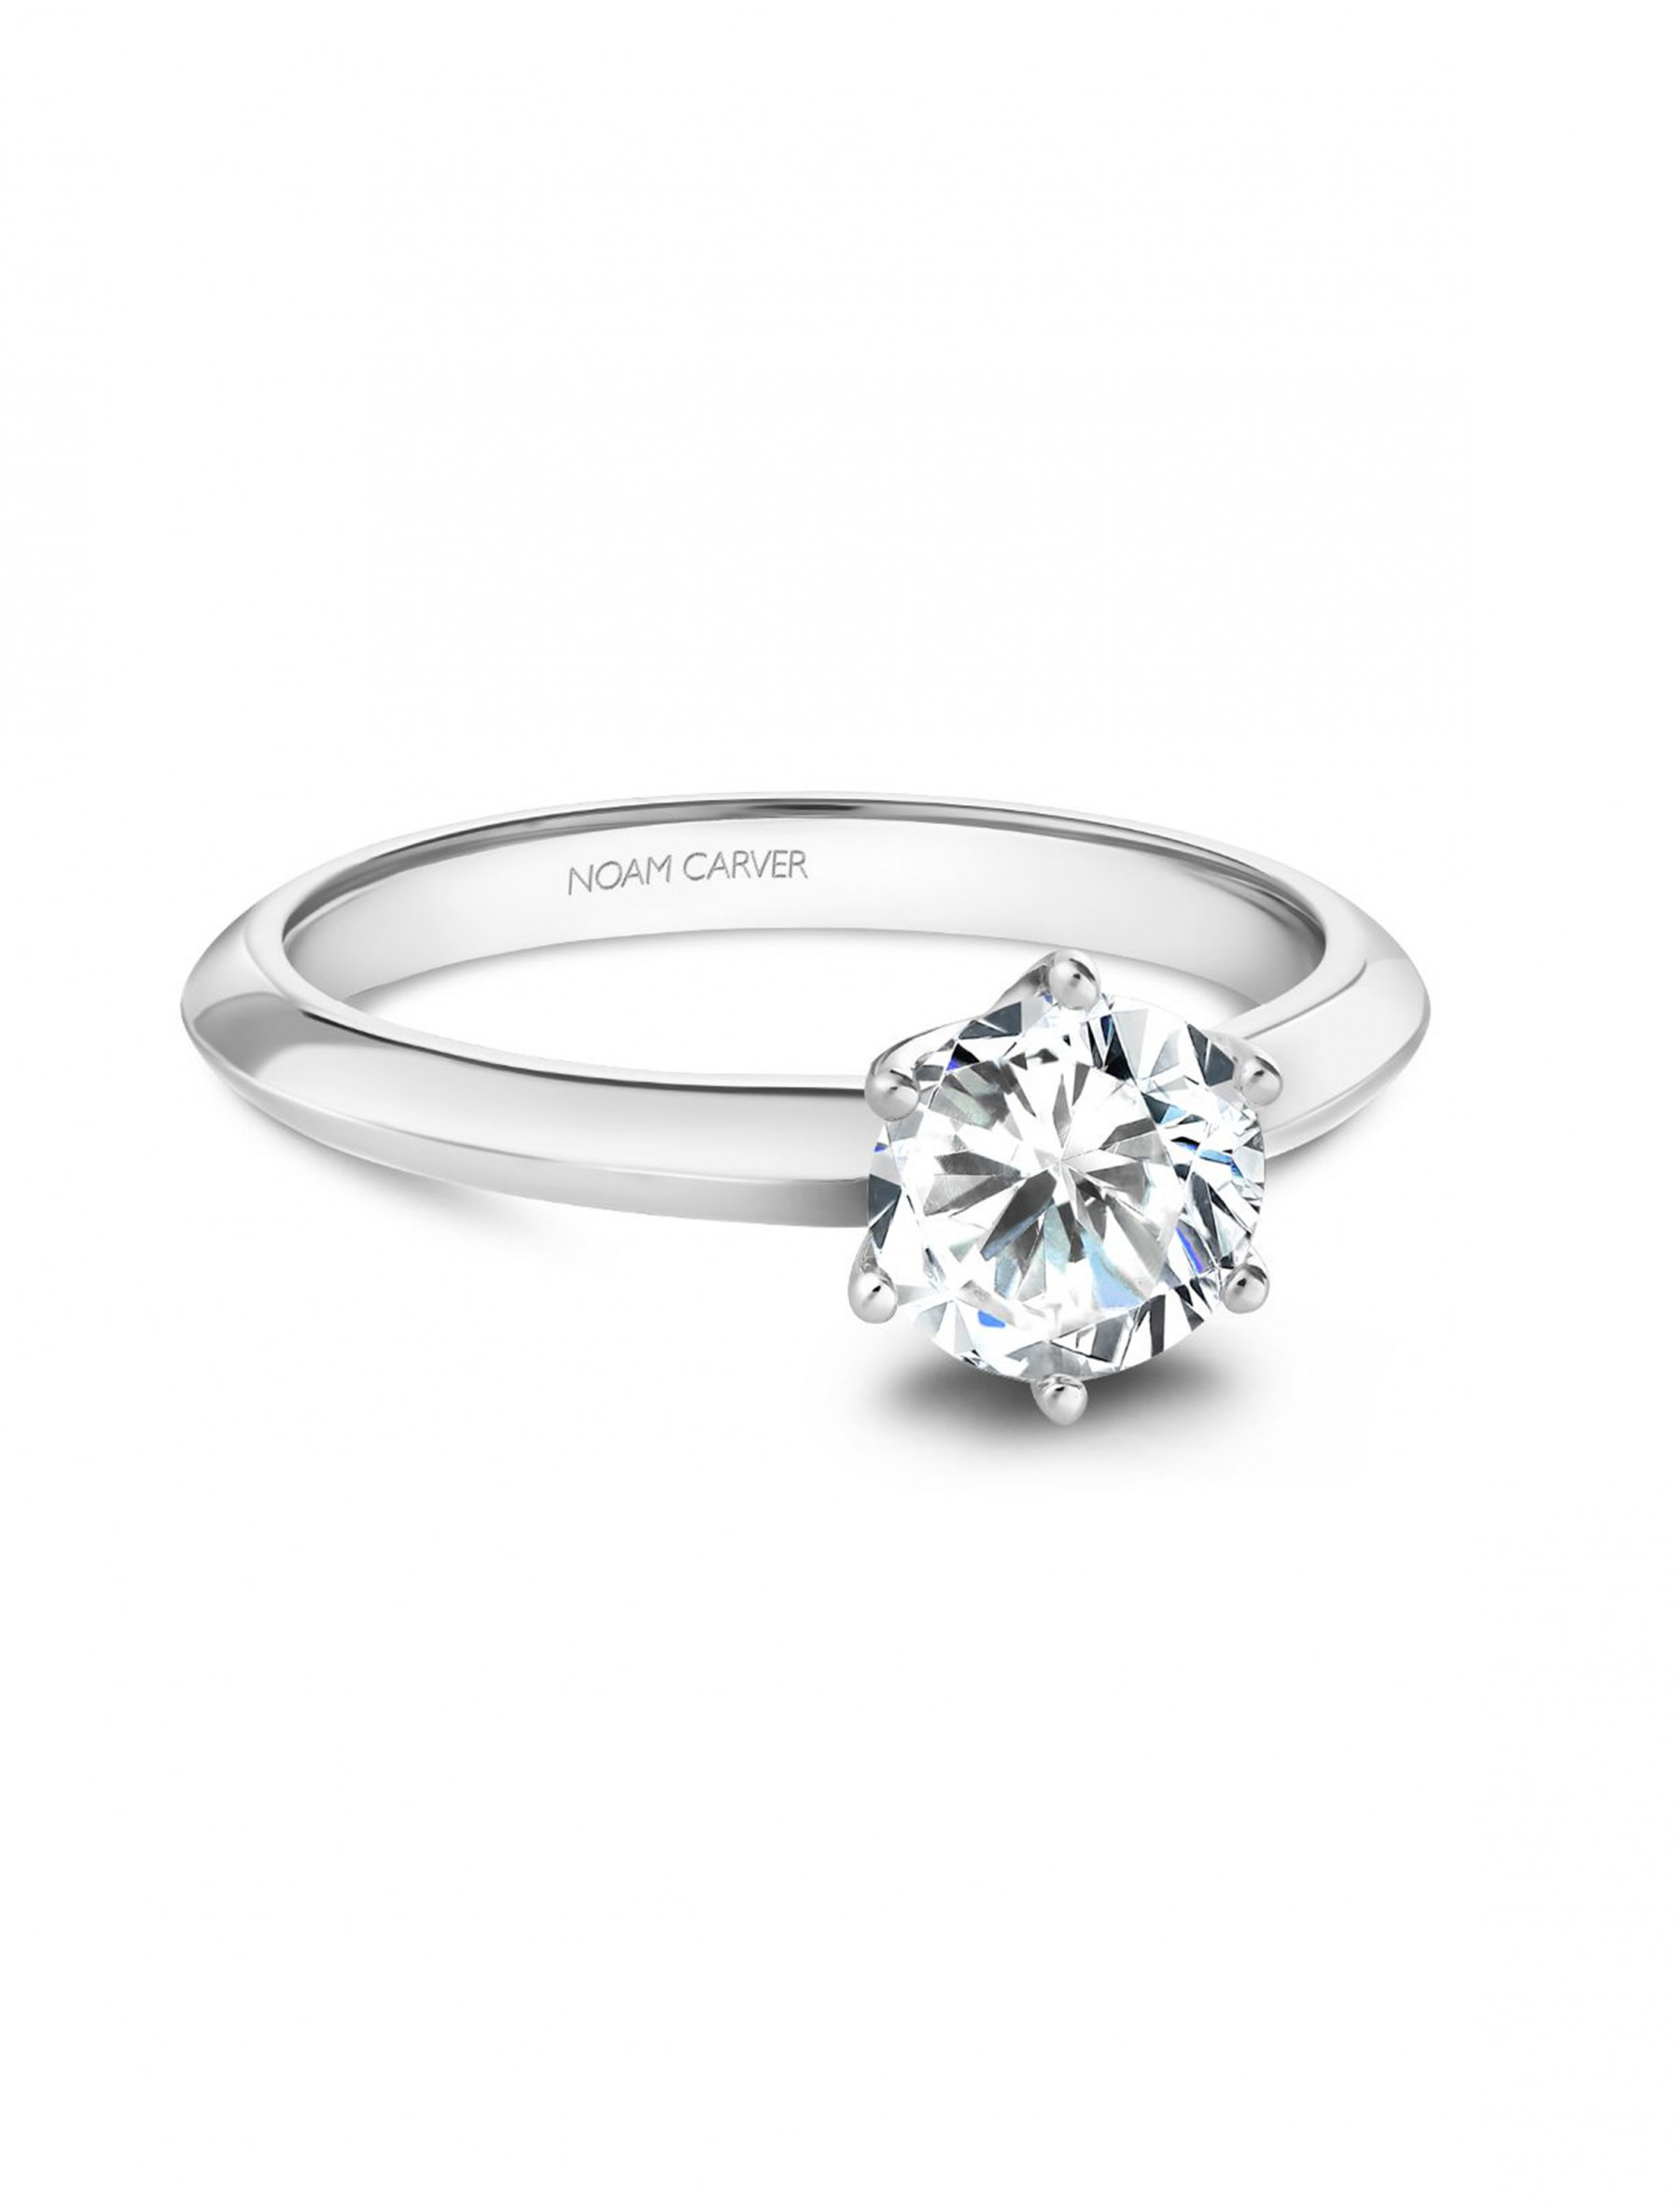 Noam Carver Round Solitaire Knife Edge Engagement Ring Setting in Platinum front view